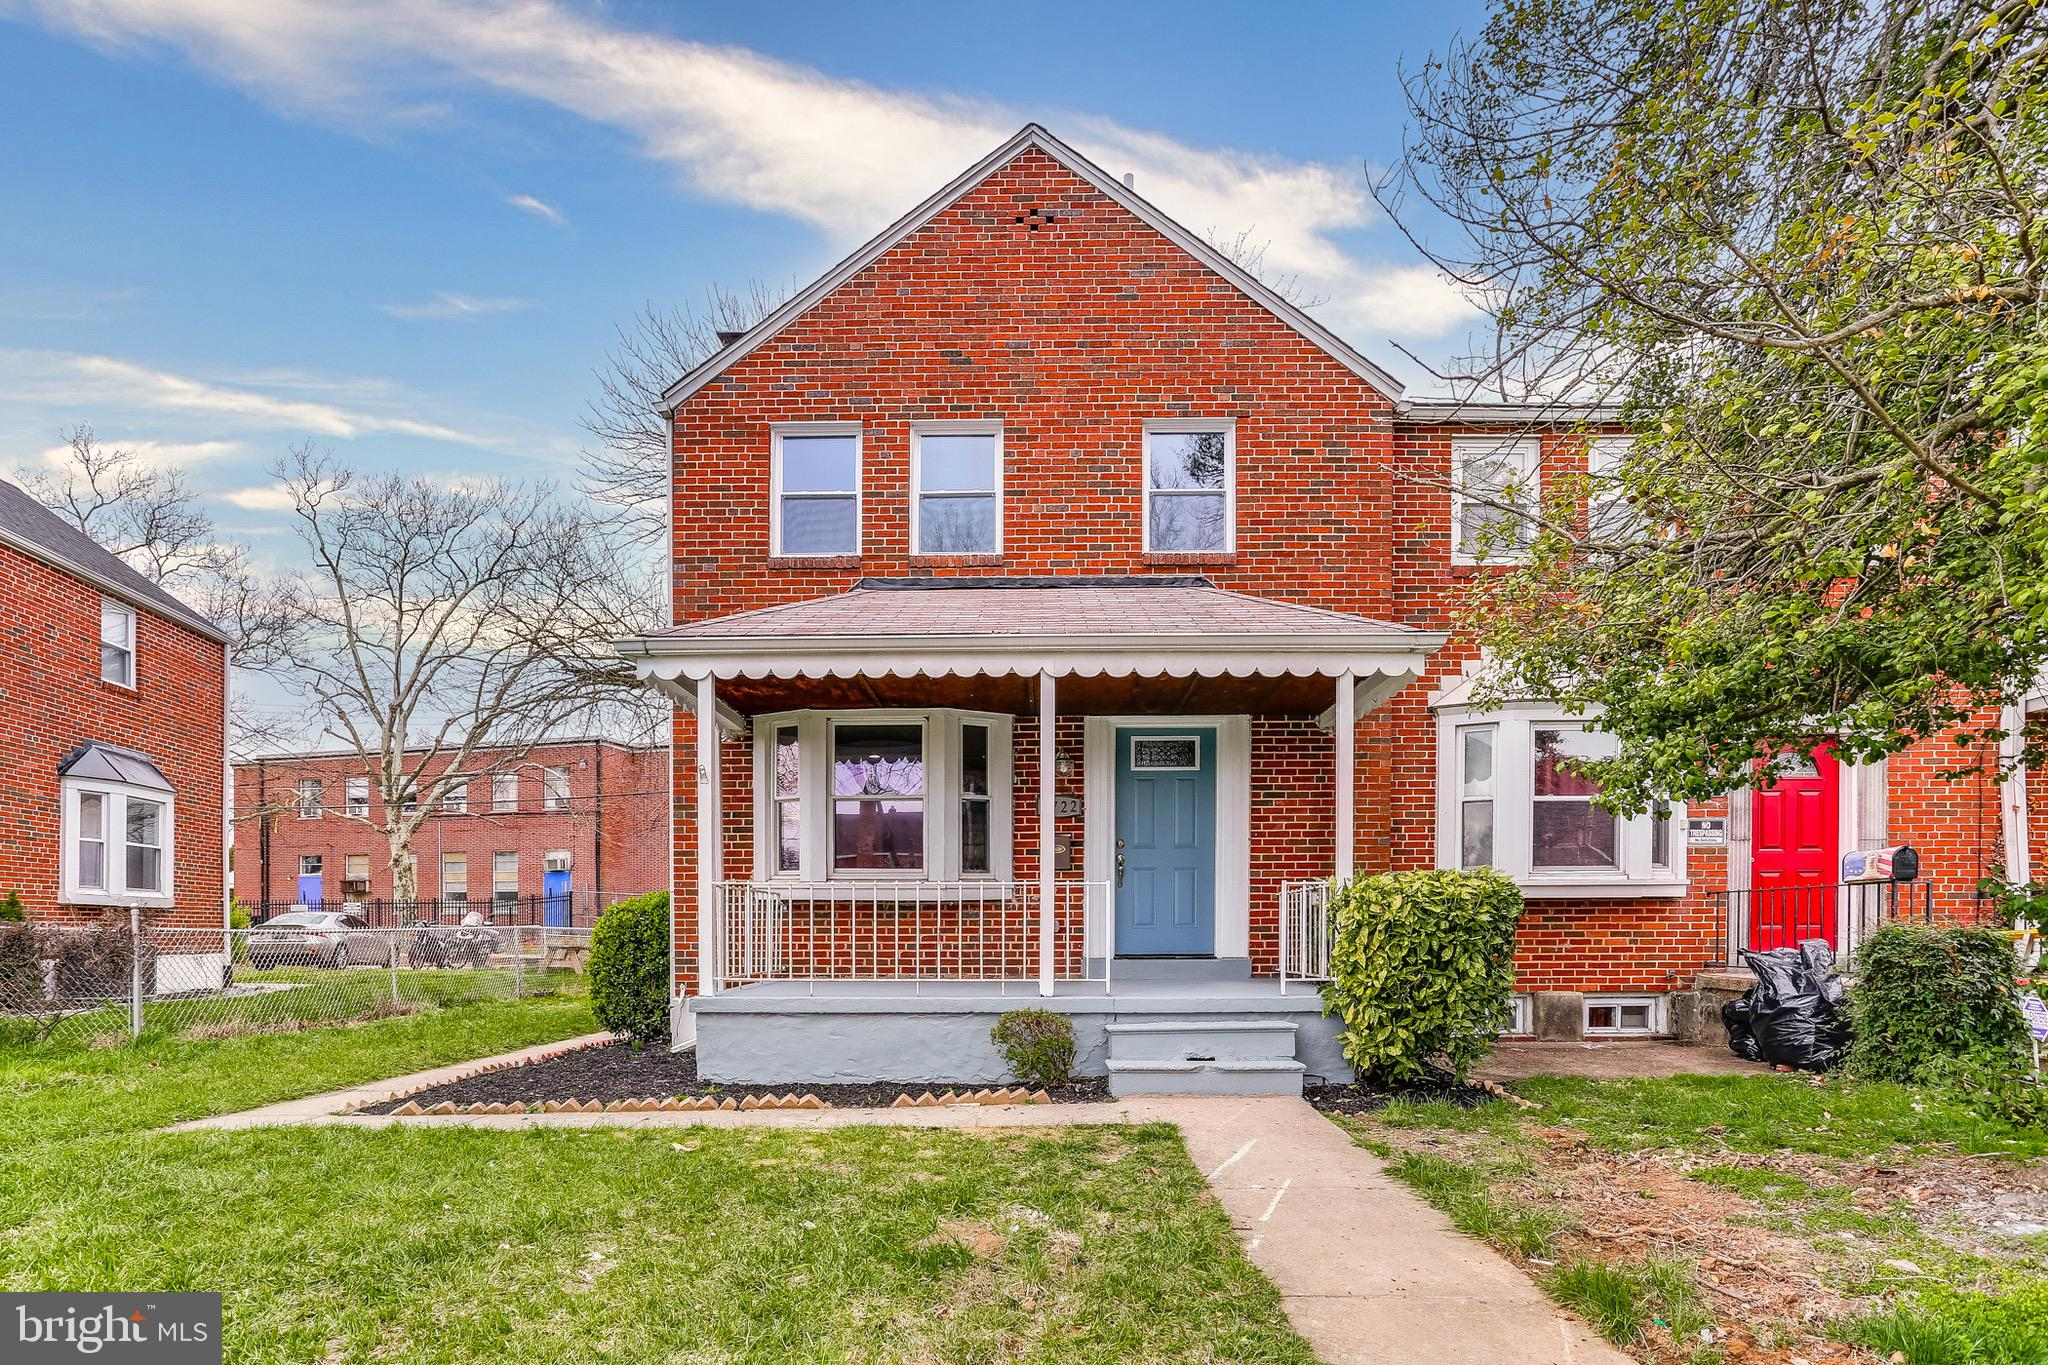 5722 MAPLEHILL ROAD, BALTIMORE, MD 21239